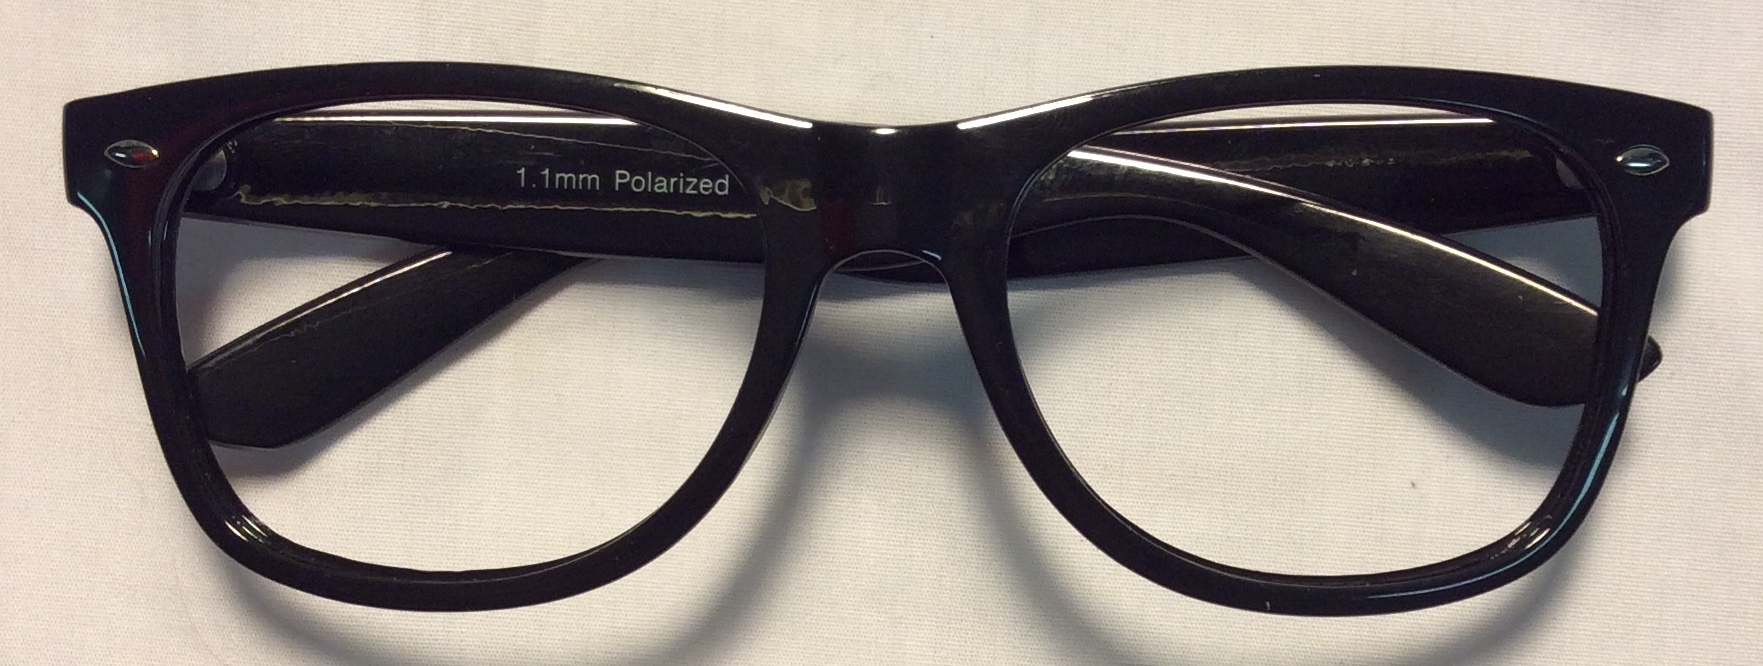 Thick black plastic frames, small